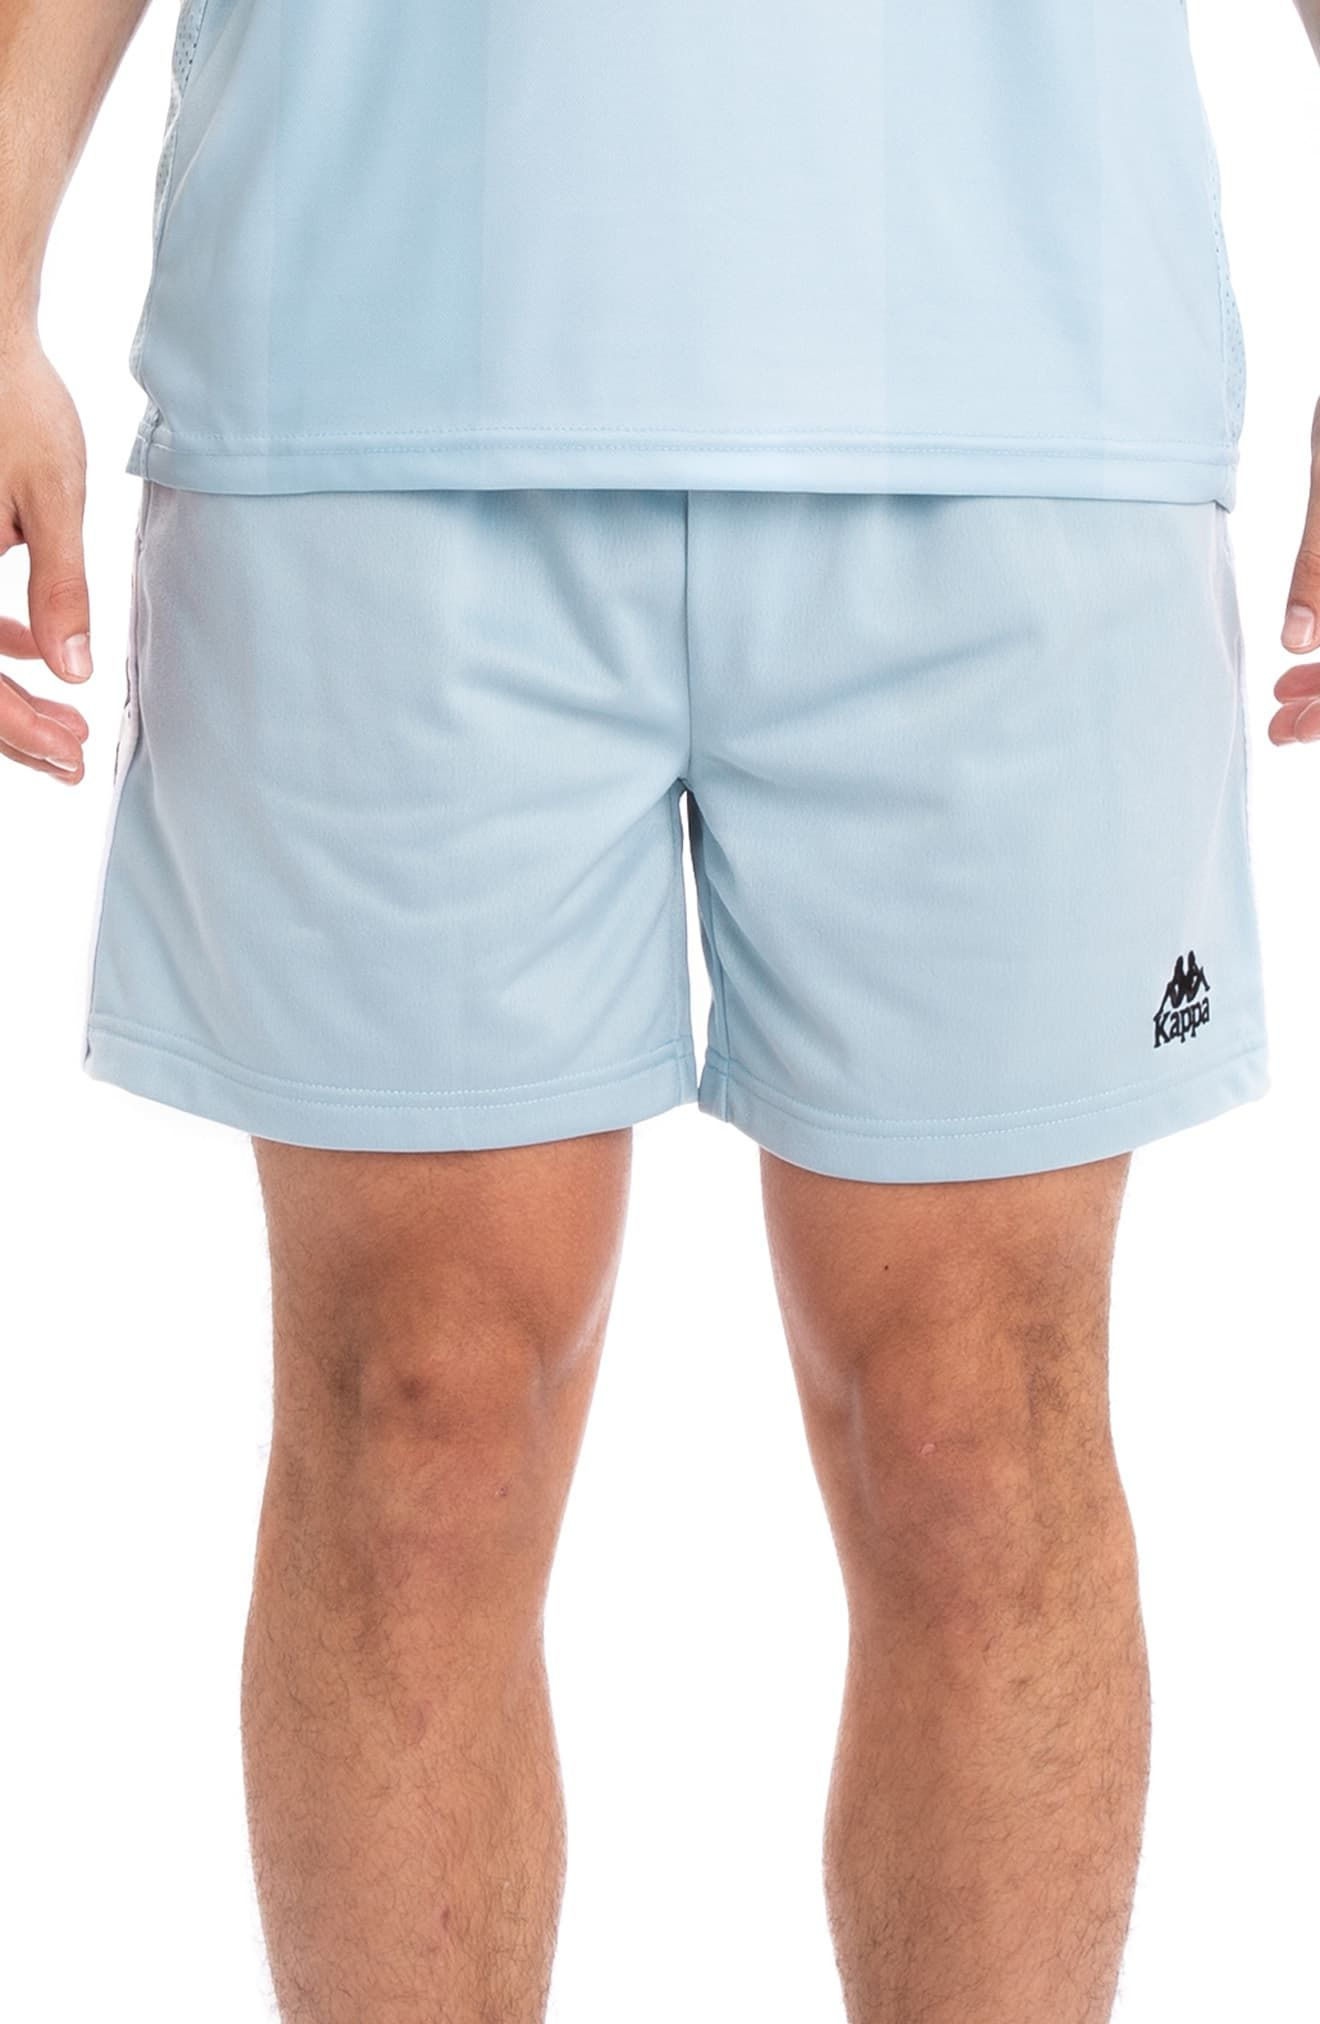 37812371 Men's Kappa 222 Banda Cole Athletic Shorts, Size Small - Blue in ...